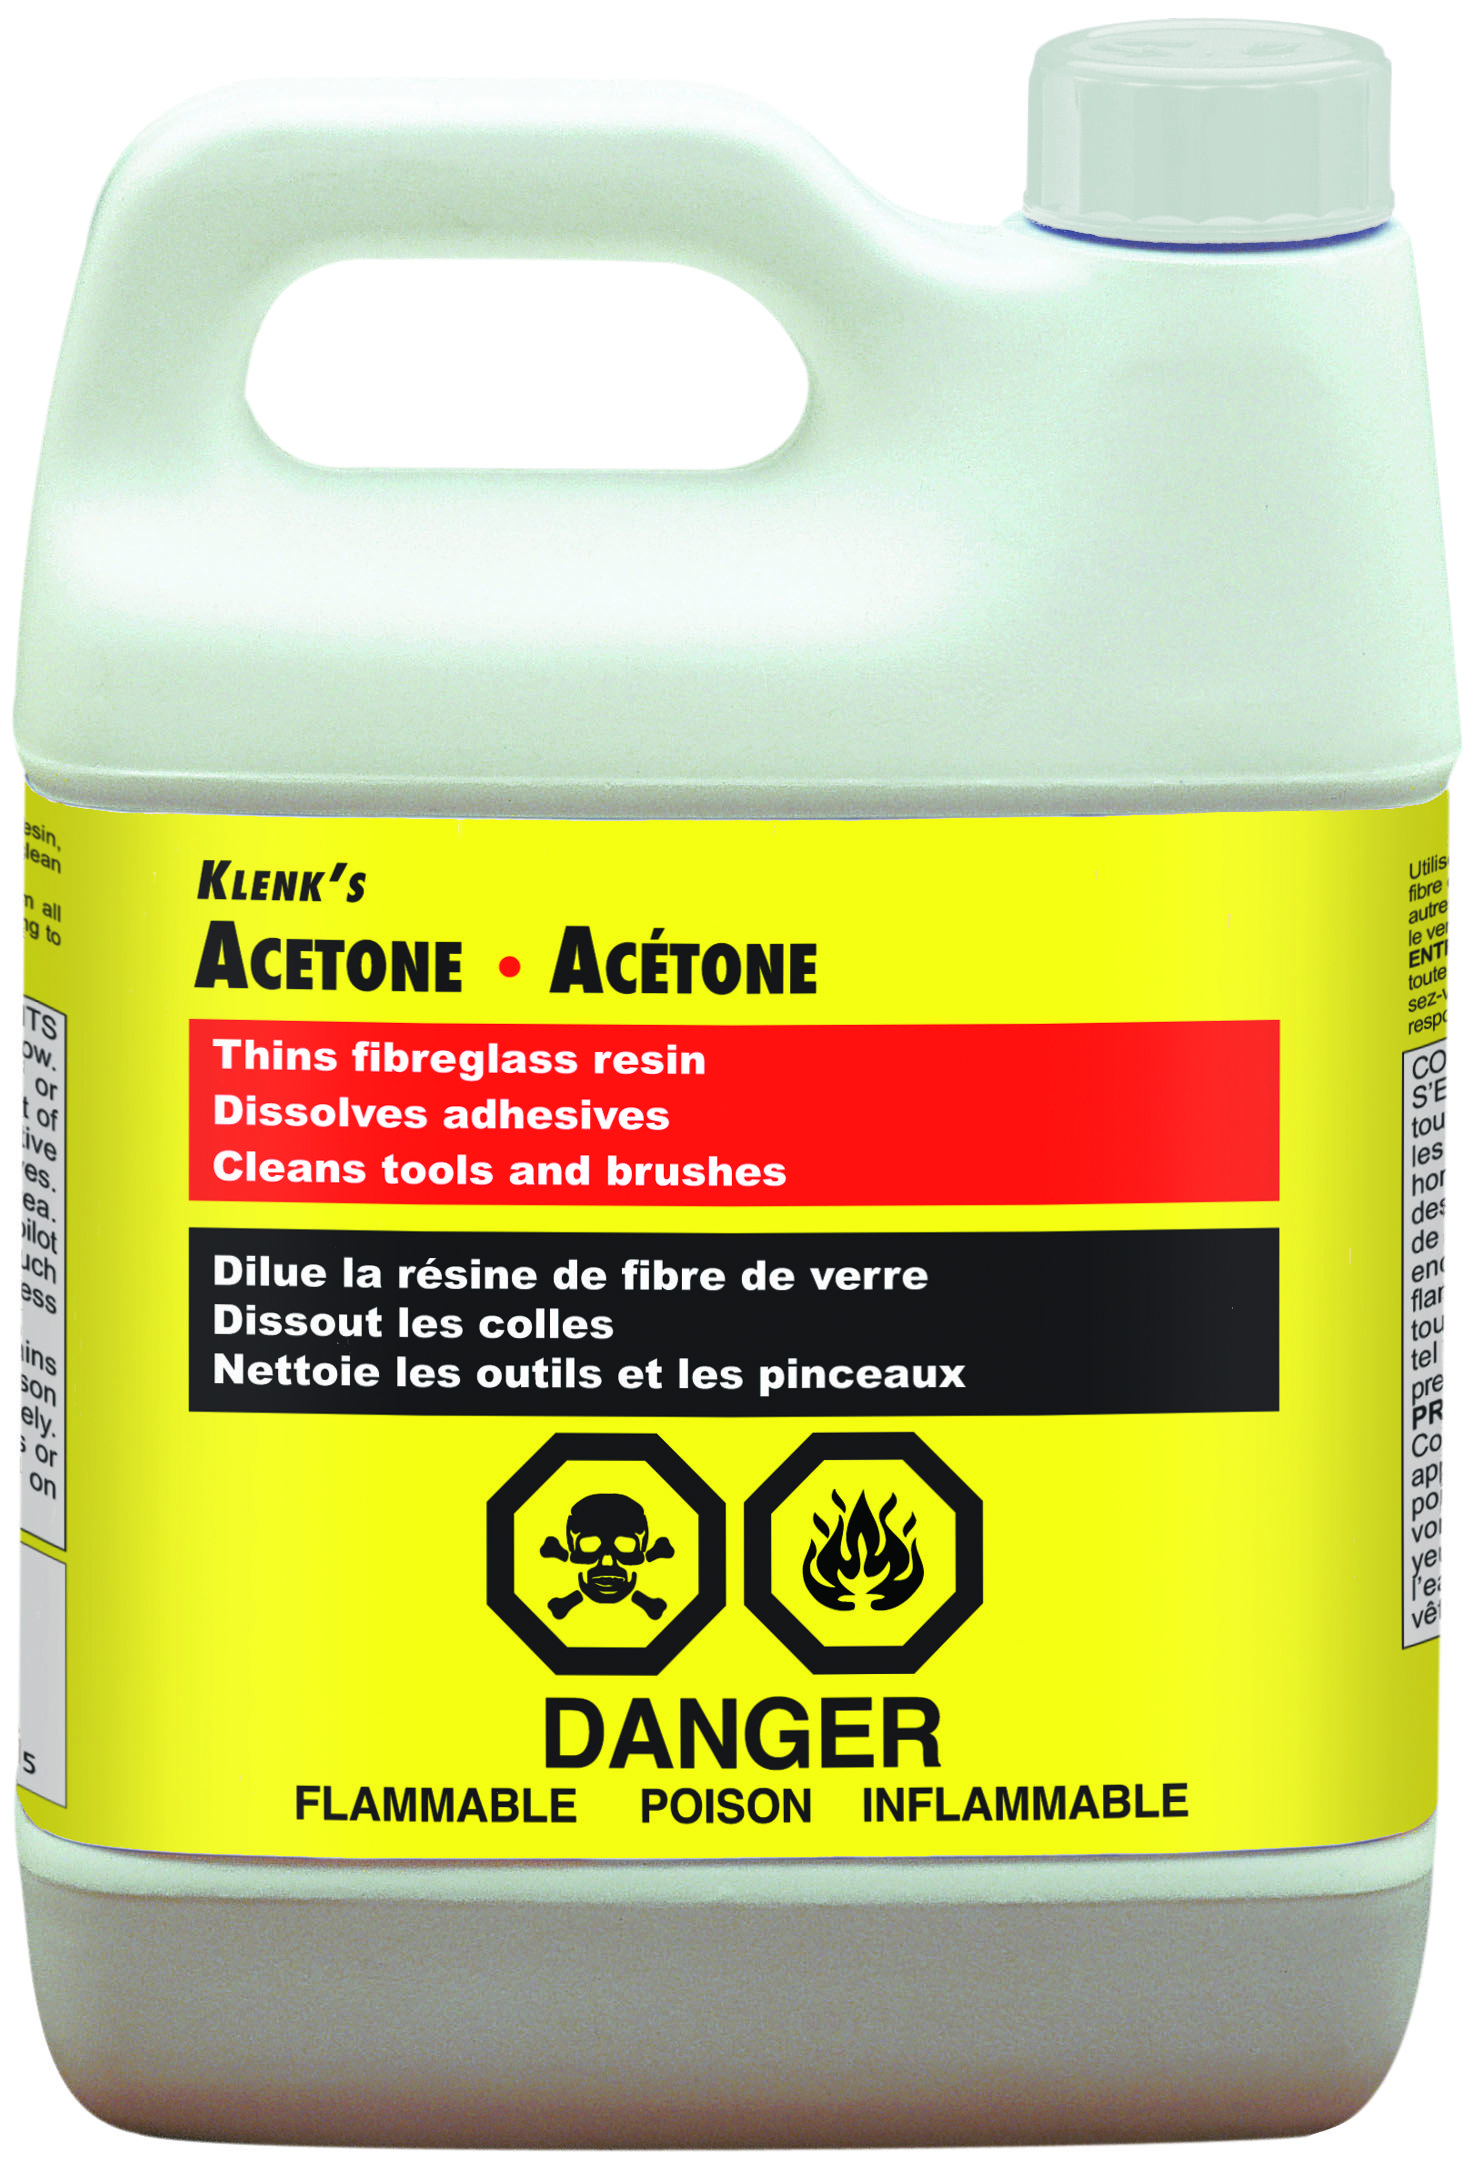 Acetone Paint Thinner : acetone, paint, thinner, Klenk's, Acetone, Thins, Fibreglass, Resins., Dissolve, Adhesives, Cleans, Tools, Brushes., Acetone,, Methylation,, Staining